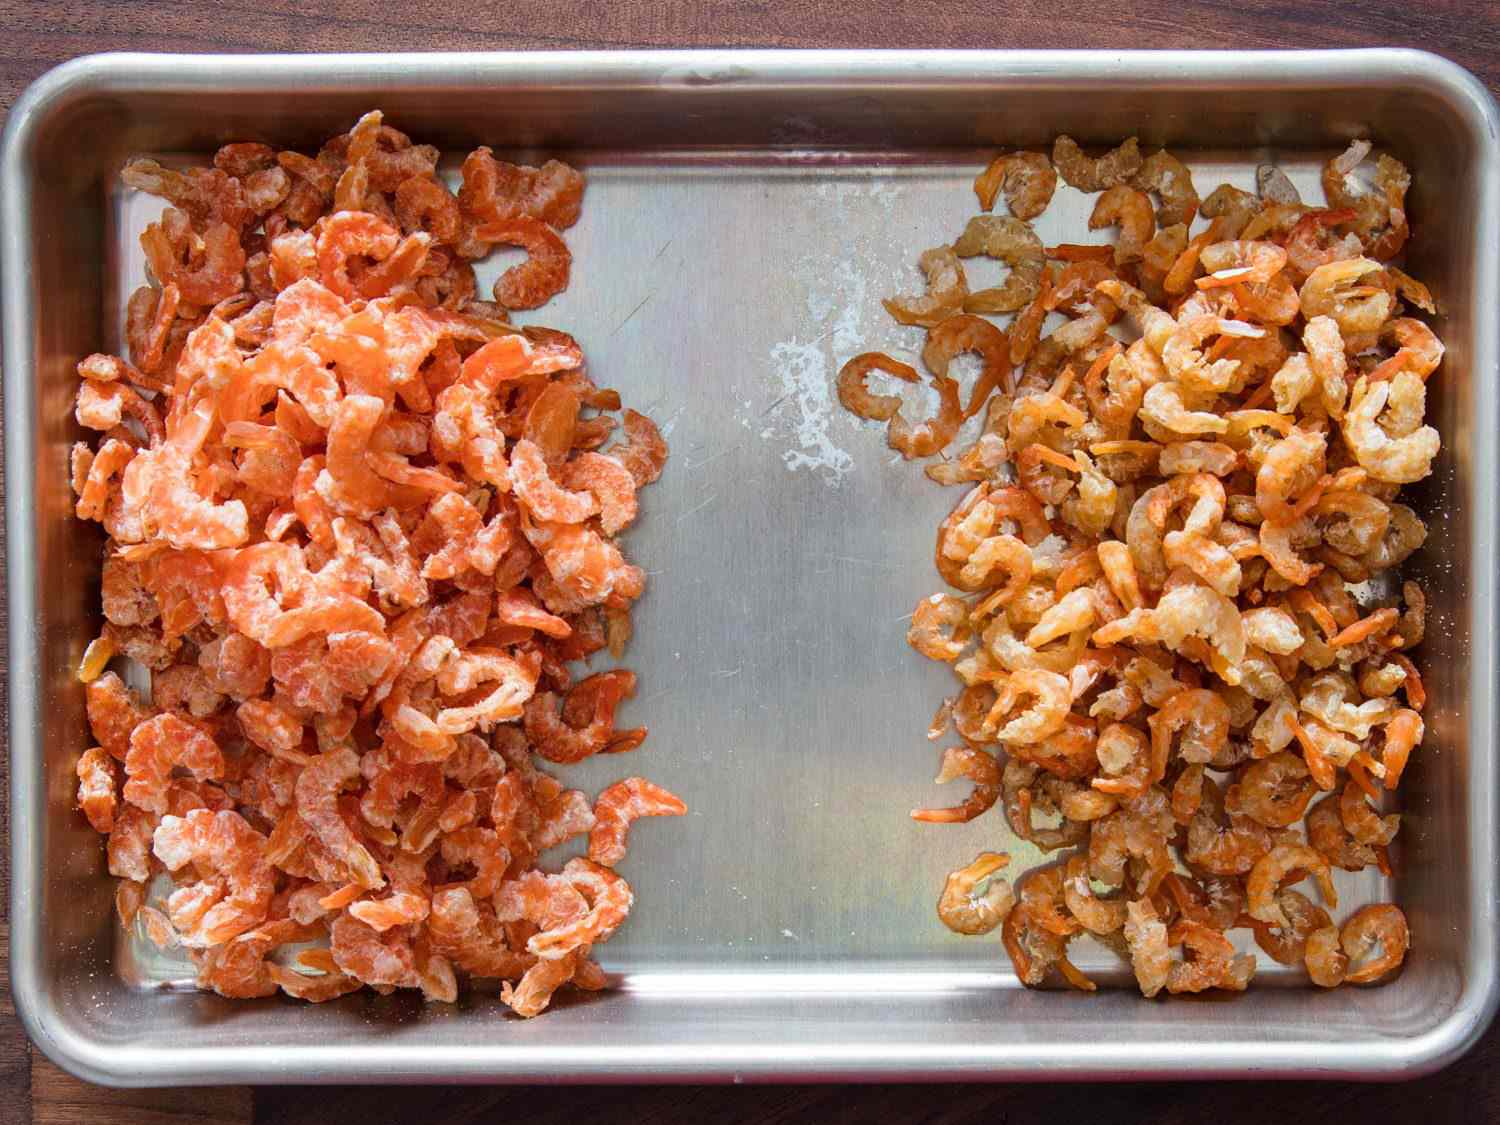 Comparison of two types of dried shrimp.